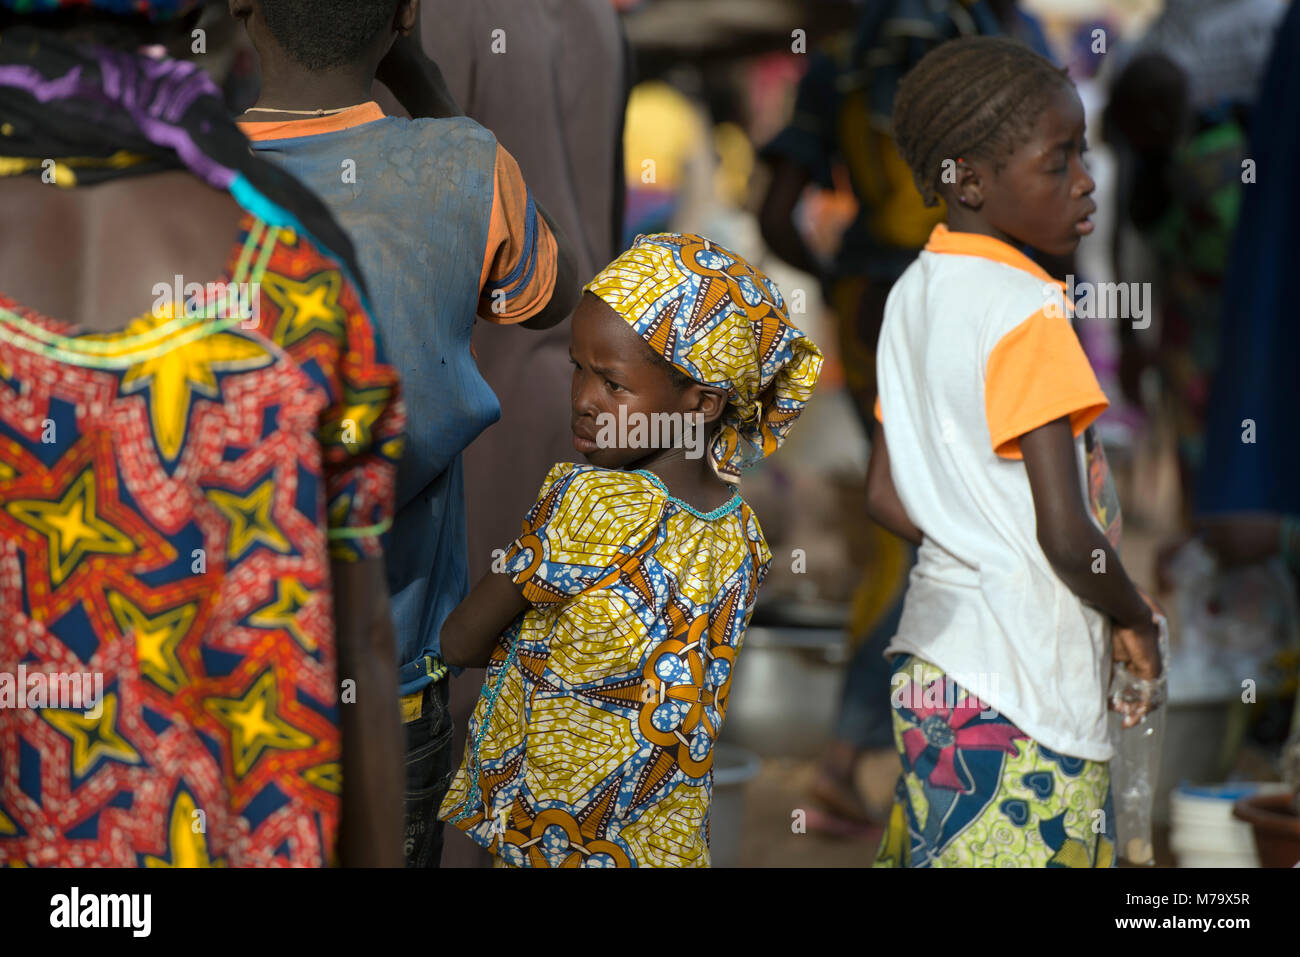 Market day in a small Dogon village. Dogon country, Mali, West Africa. - Stock Image